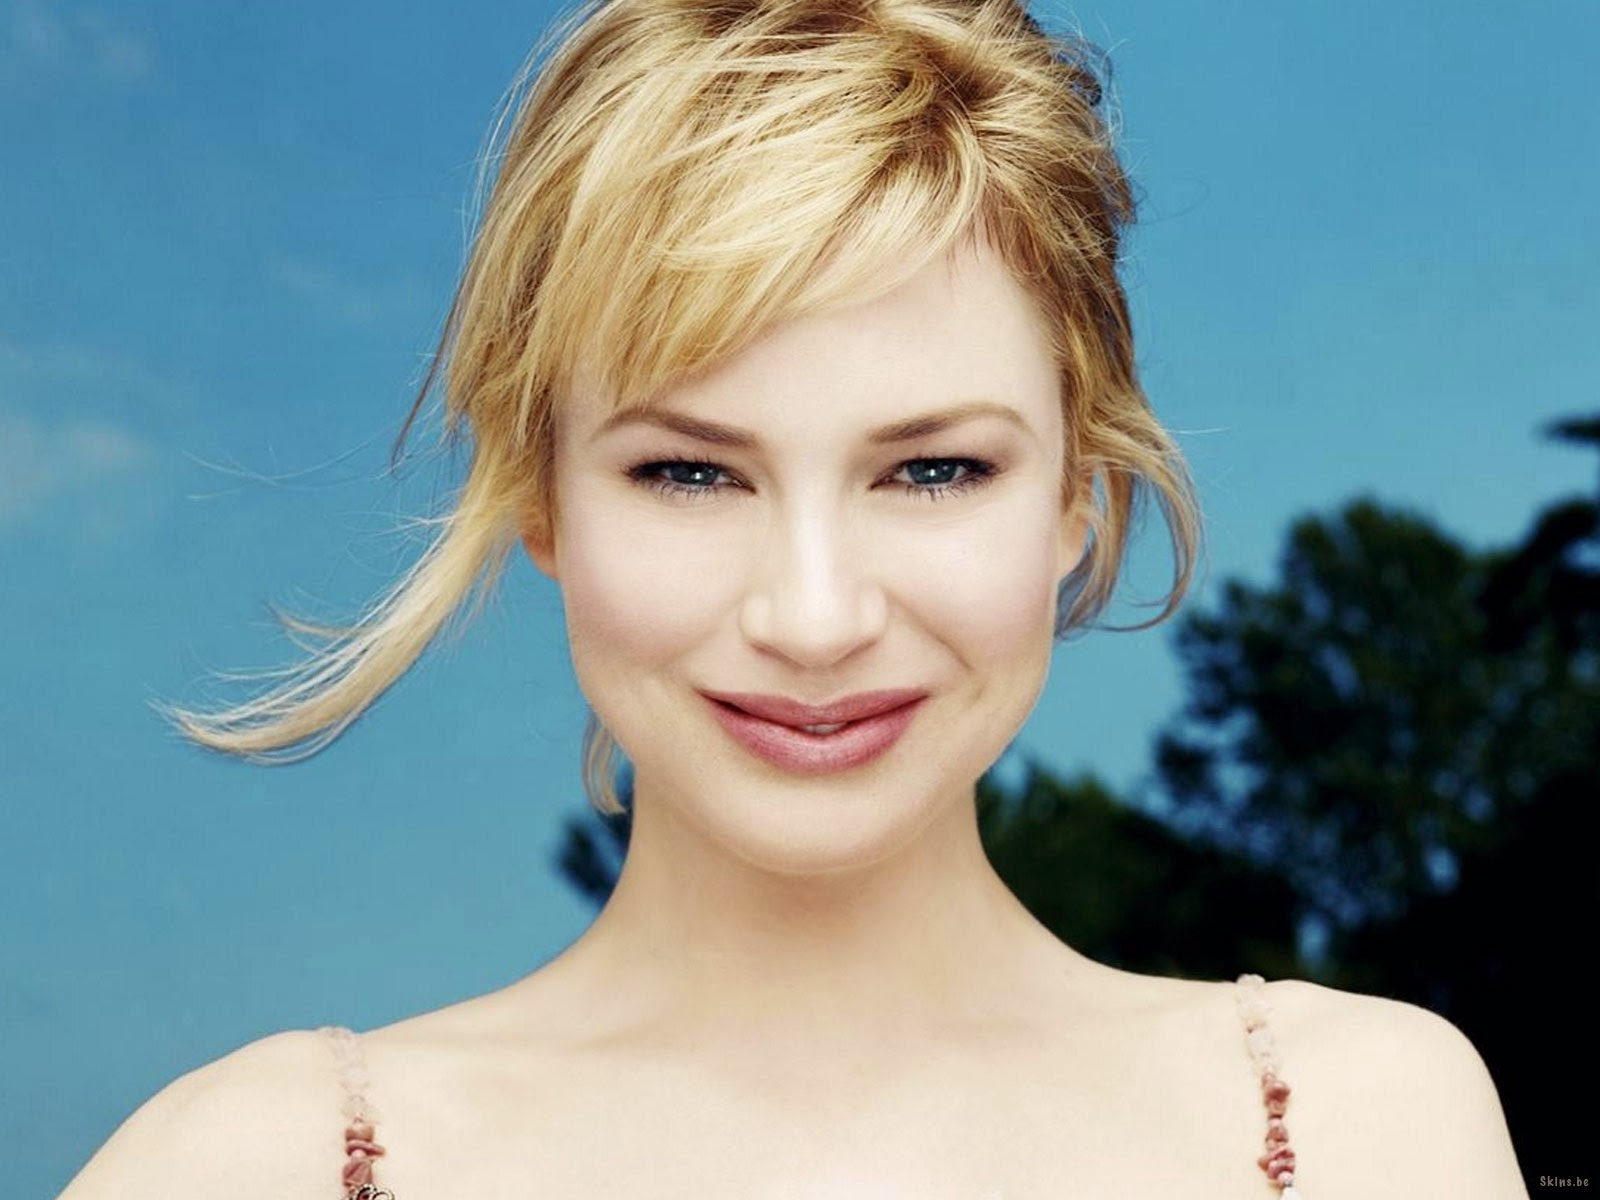 Renee Zellweger Fake Nude Minimalist a view from the beach: rule 5 saturday - the woman with two faces